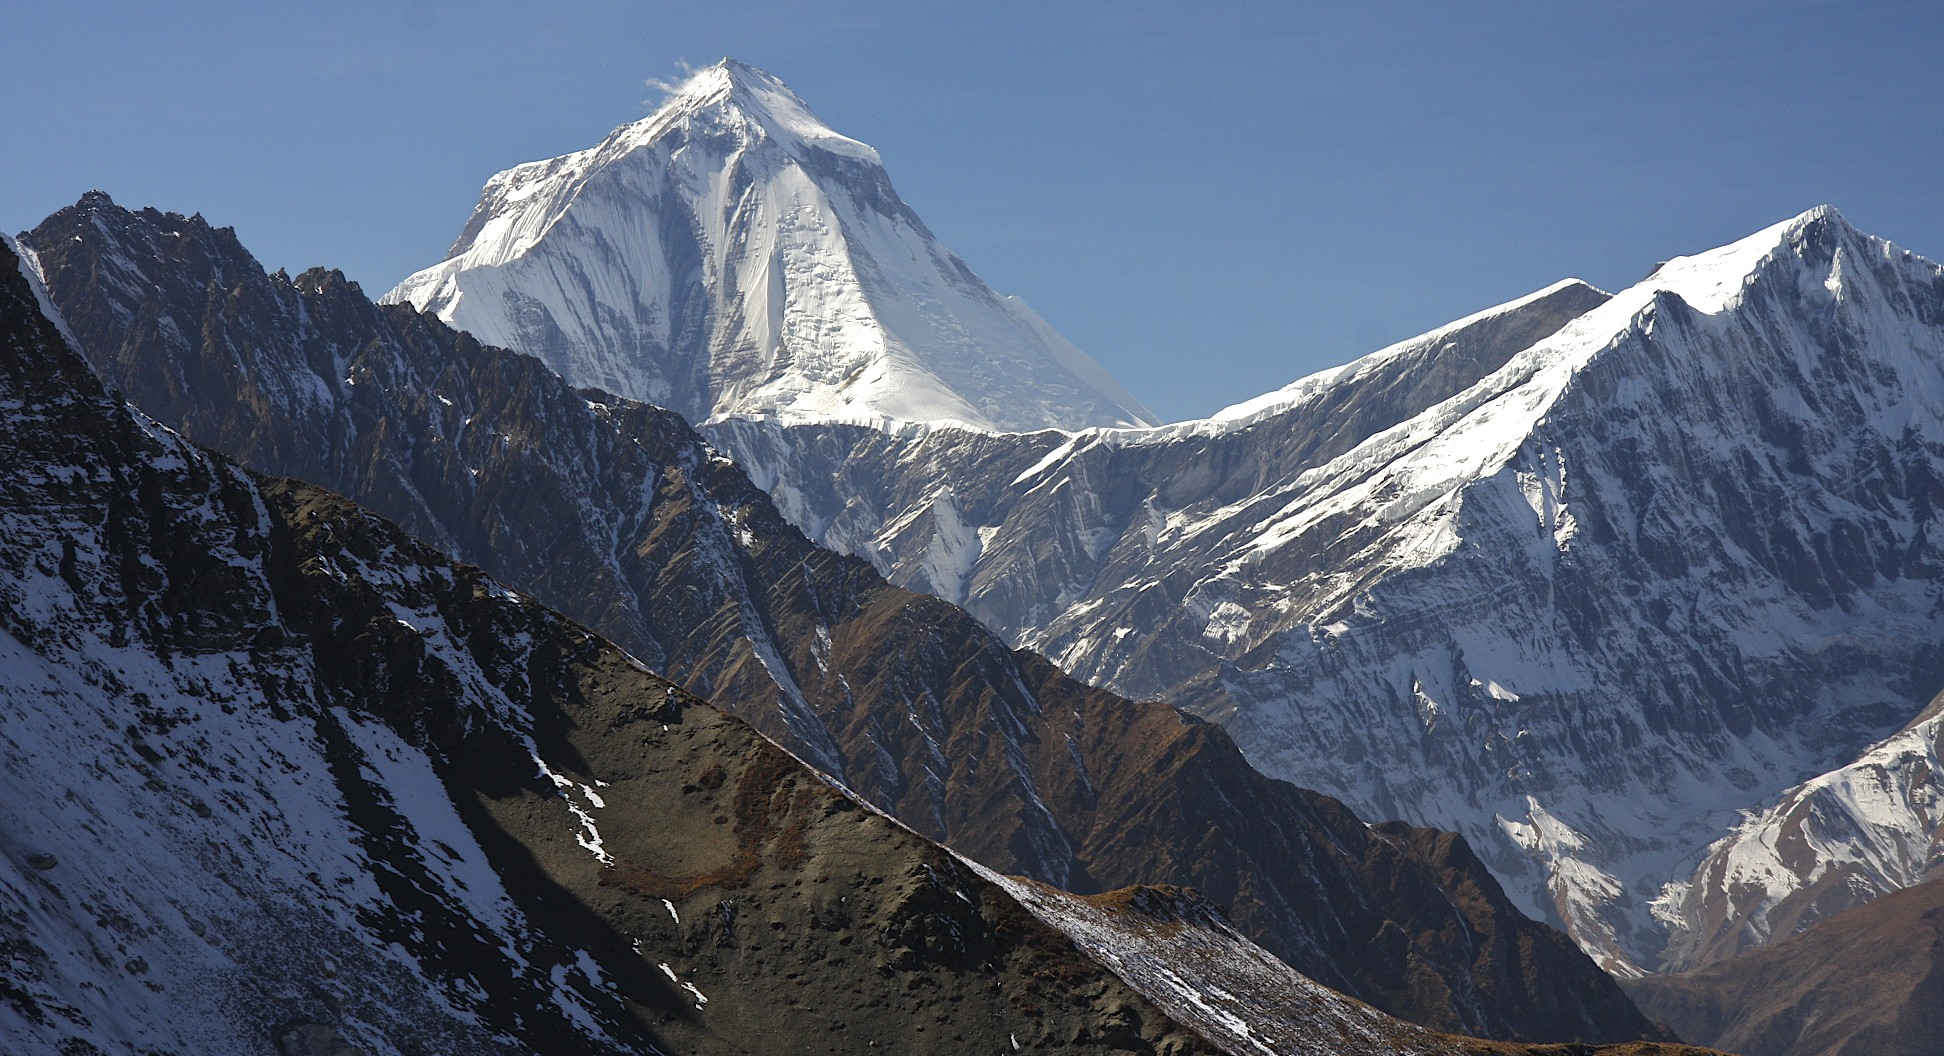 Dhaulagiri I and the Tukche Peak